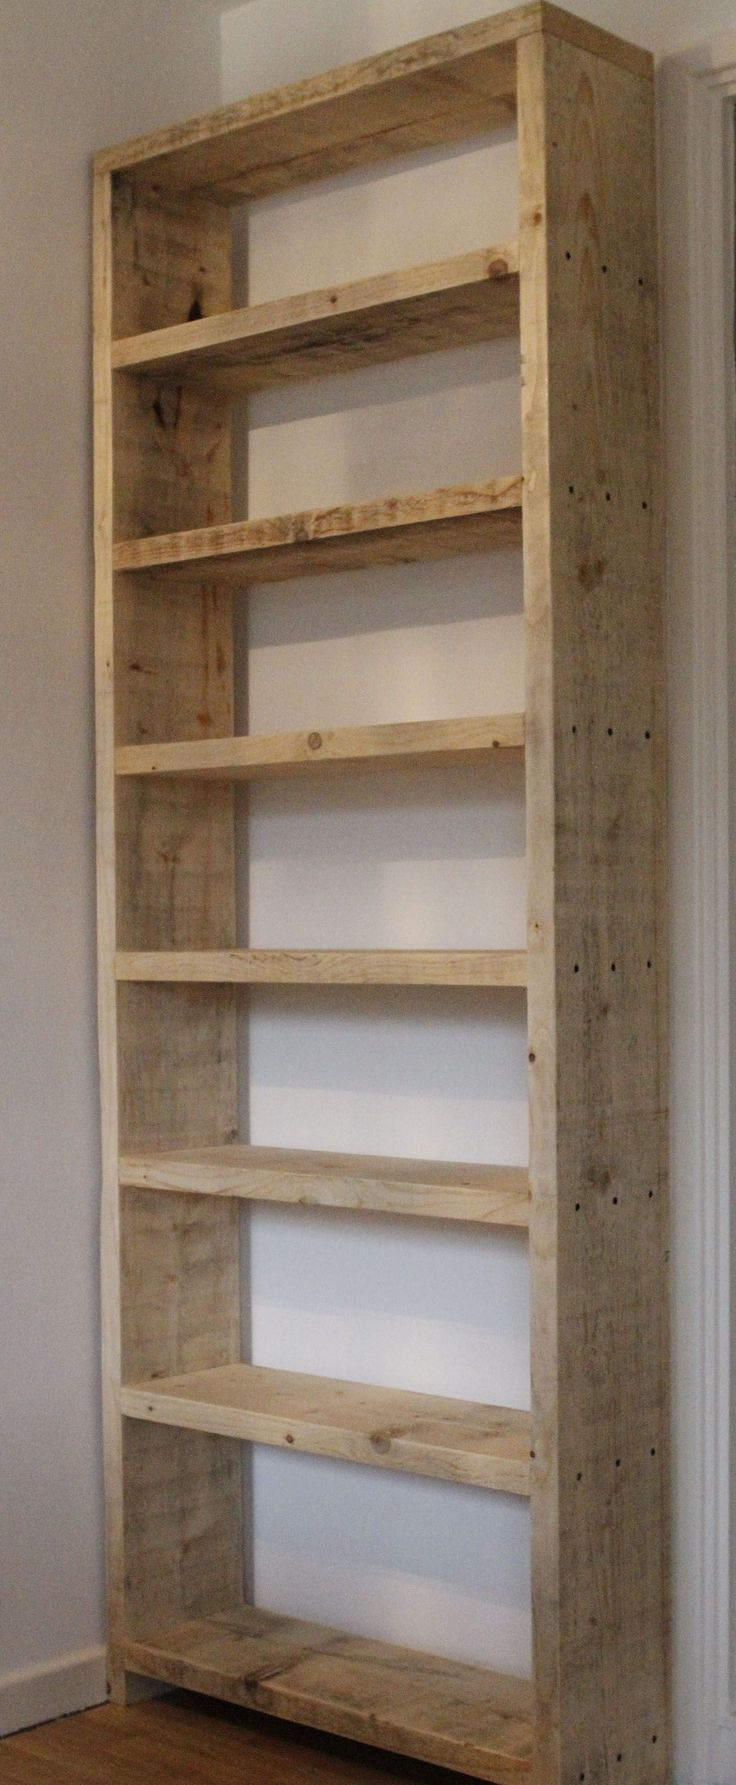 ! Basic wood shelves from 2x10 boards. Use wood screws, countersink & fill with wood putty then prime & paint. Easy cheap shelves